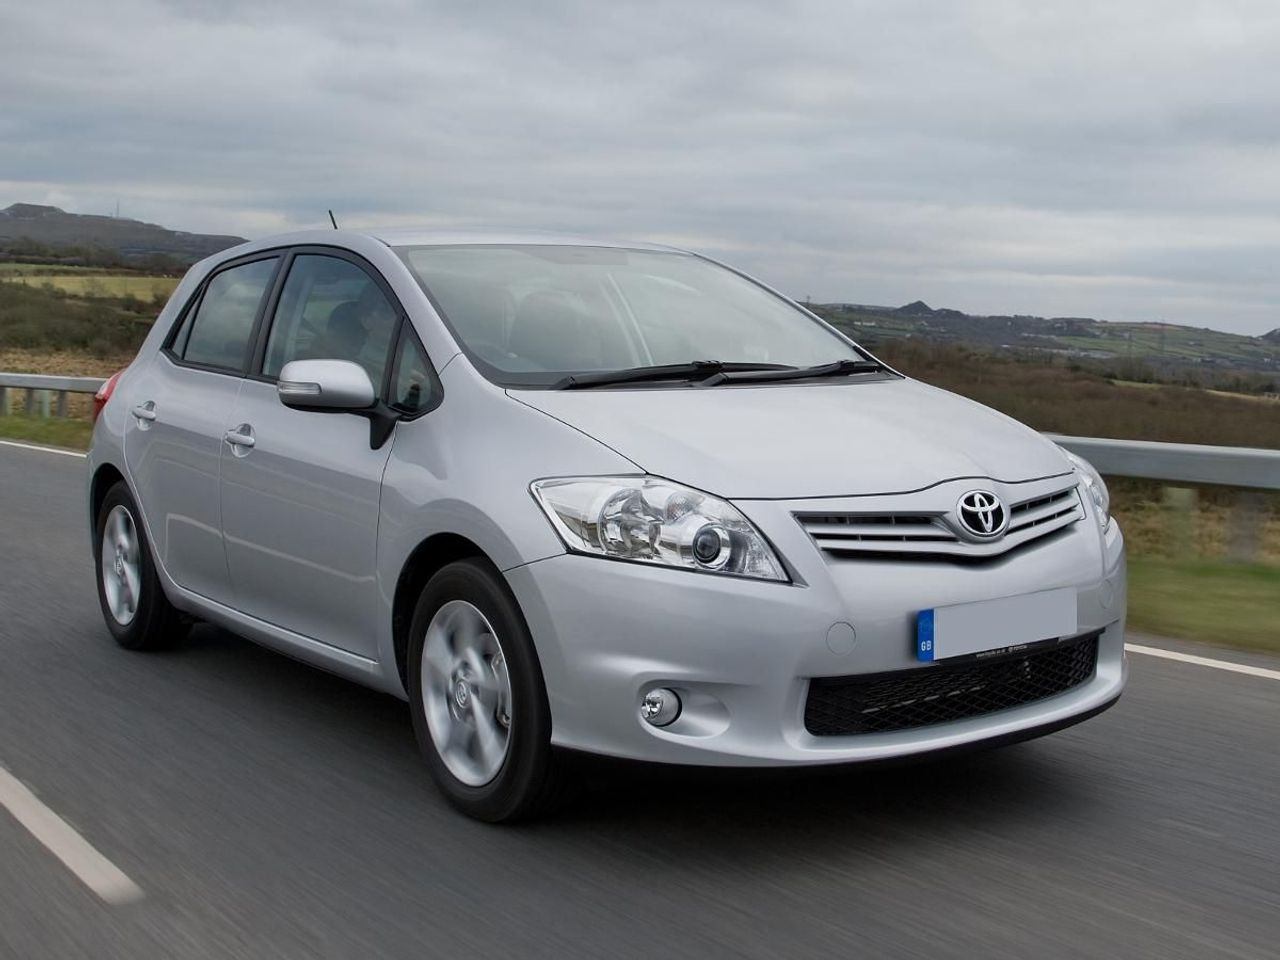 toyota auris hatchback 2007 2010 review auto trader uk. Black Bedroom Furniture Sets. Home Design Ideas